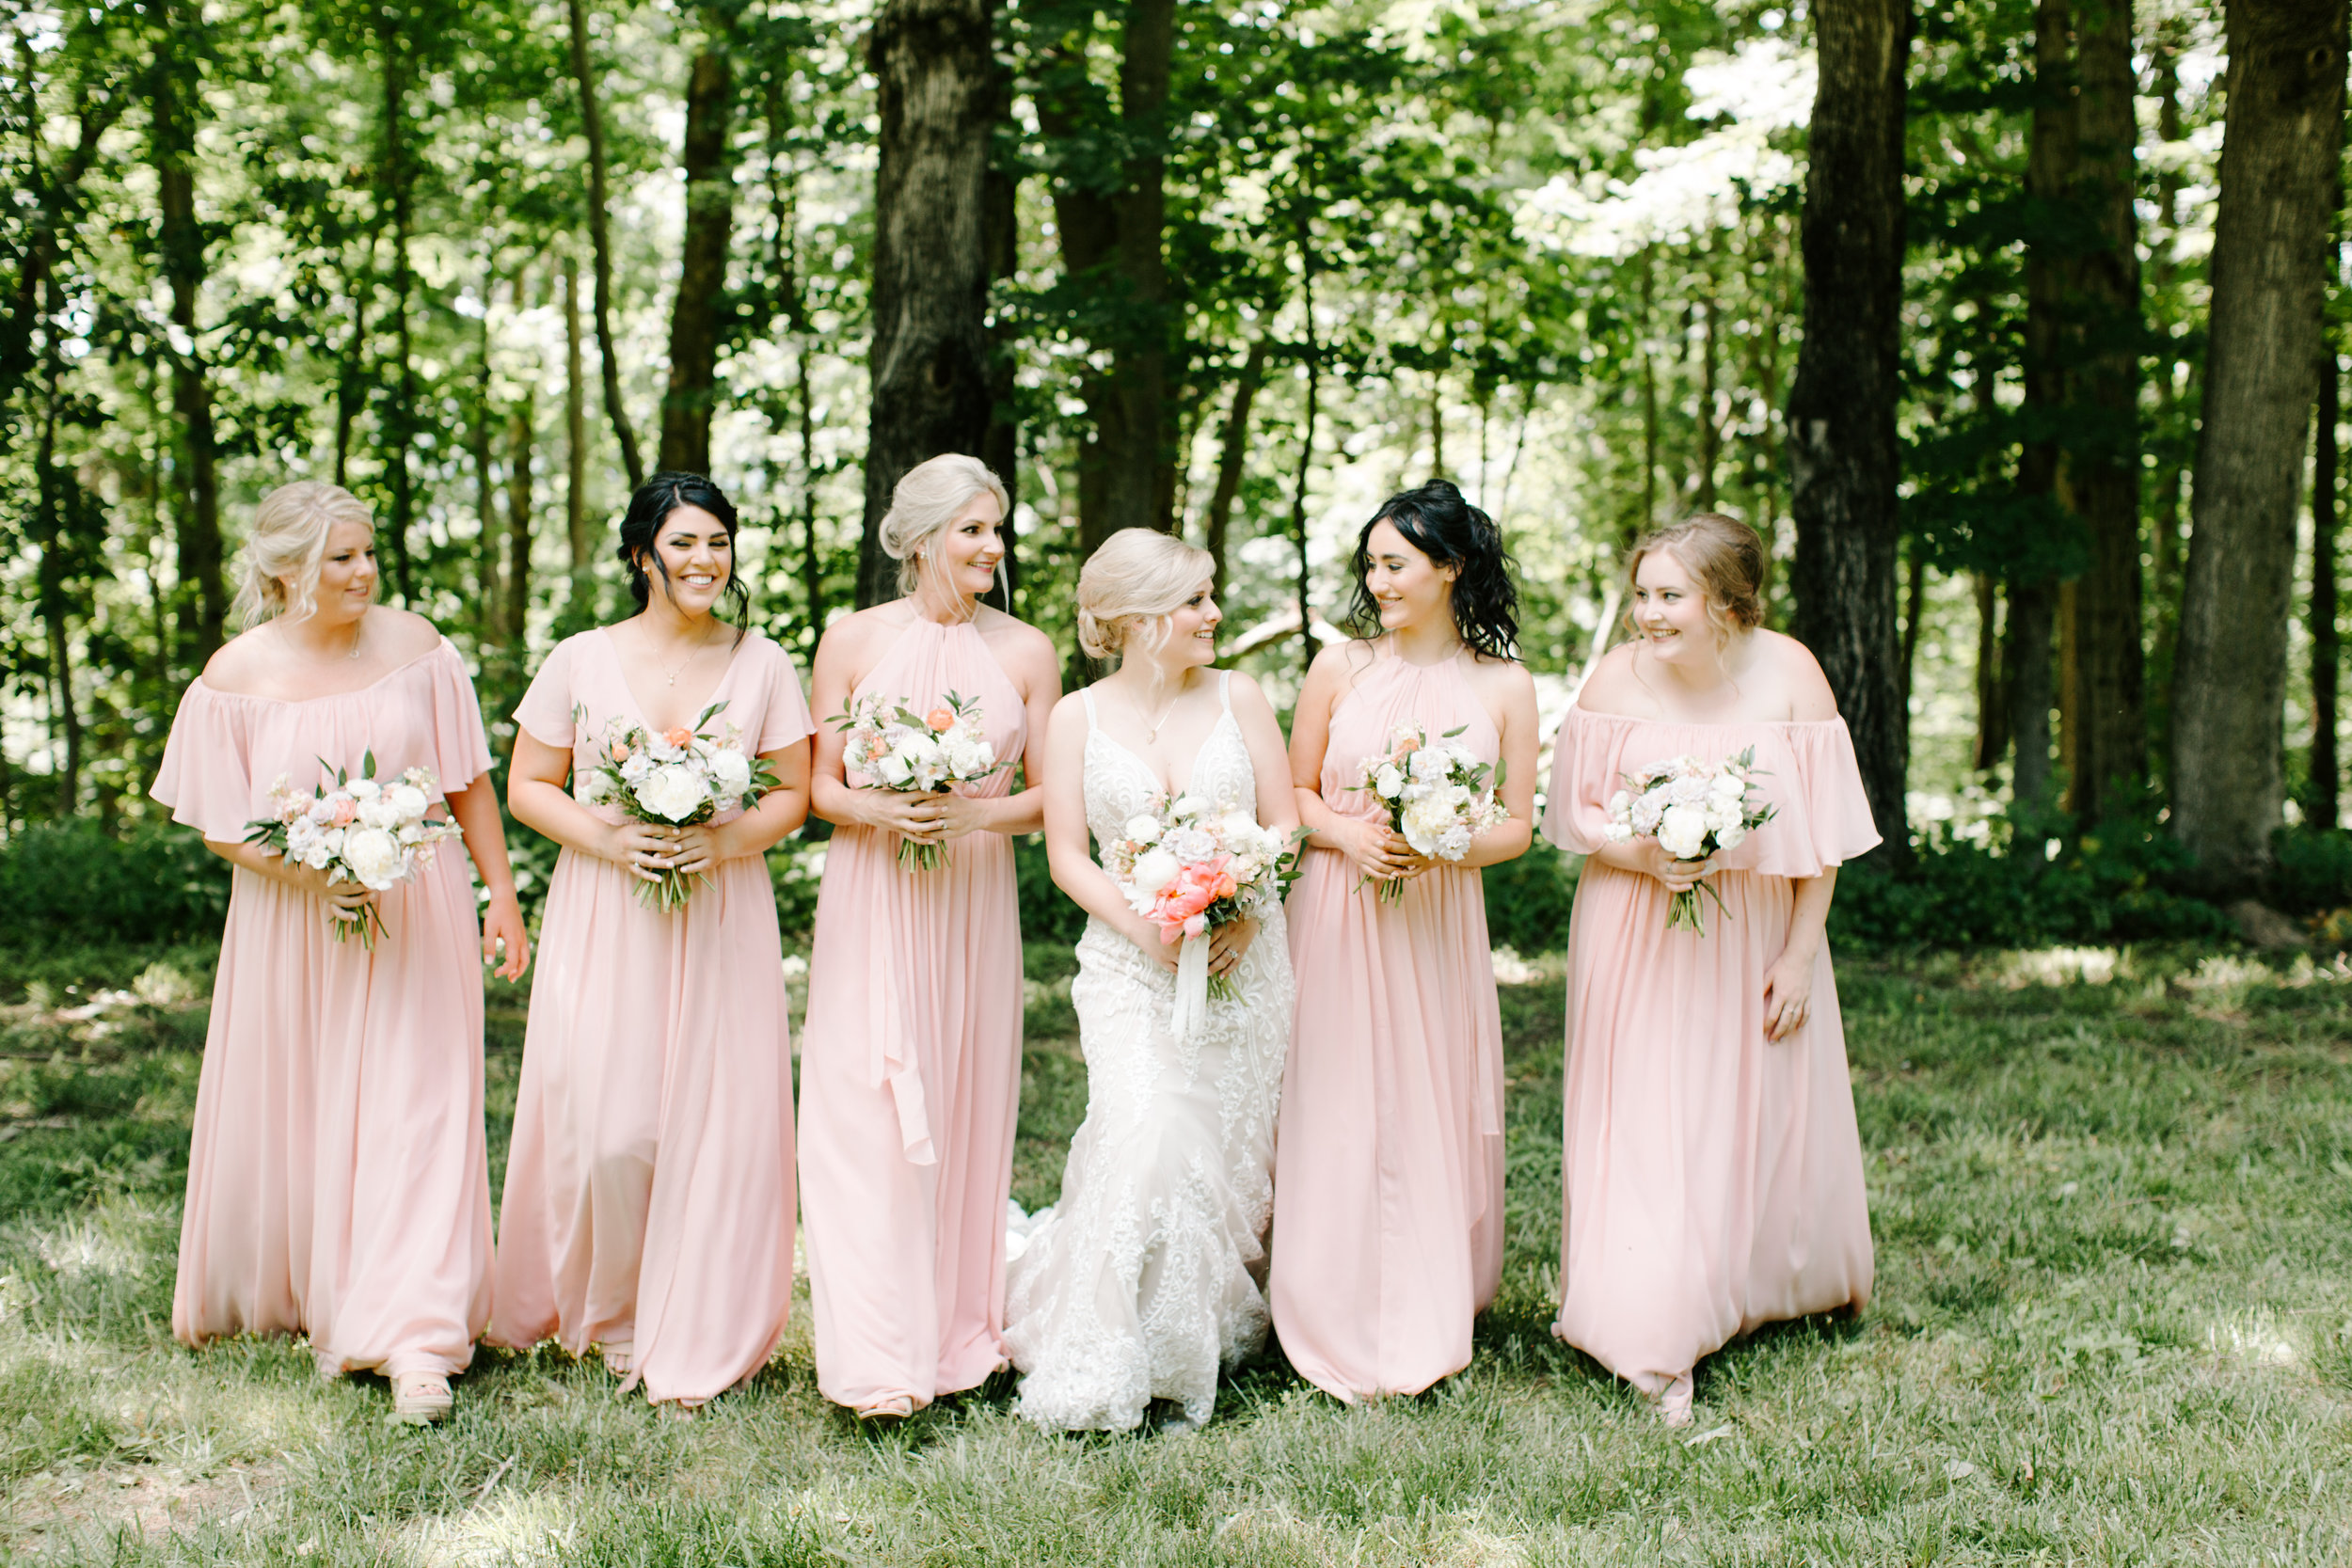 bridesmaids-in-pink-dresses.jpg